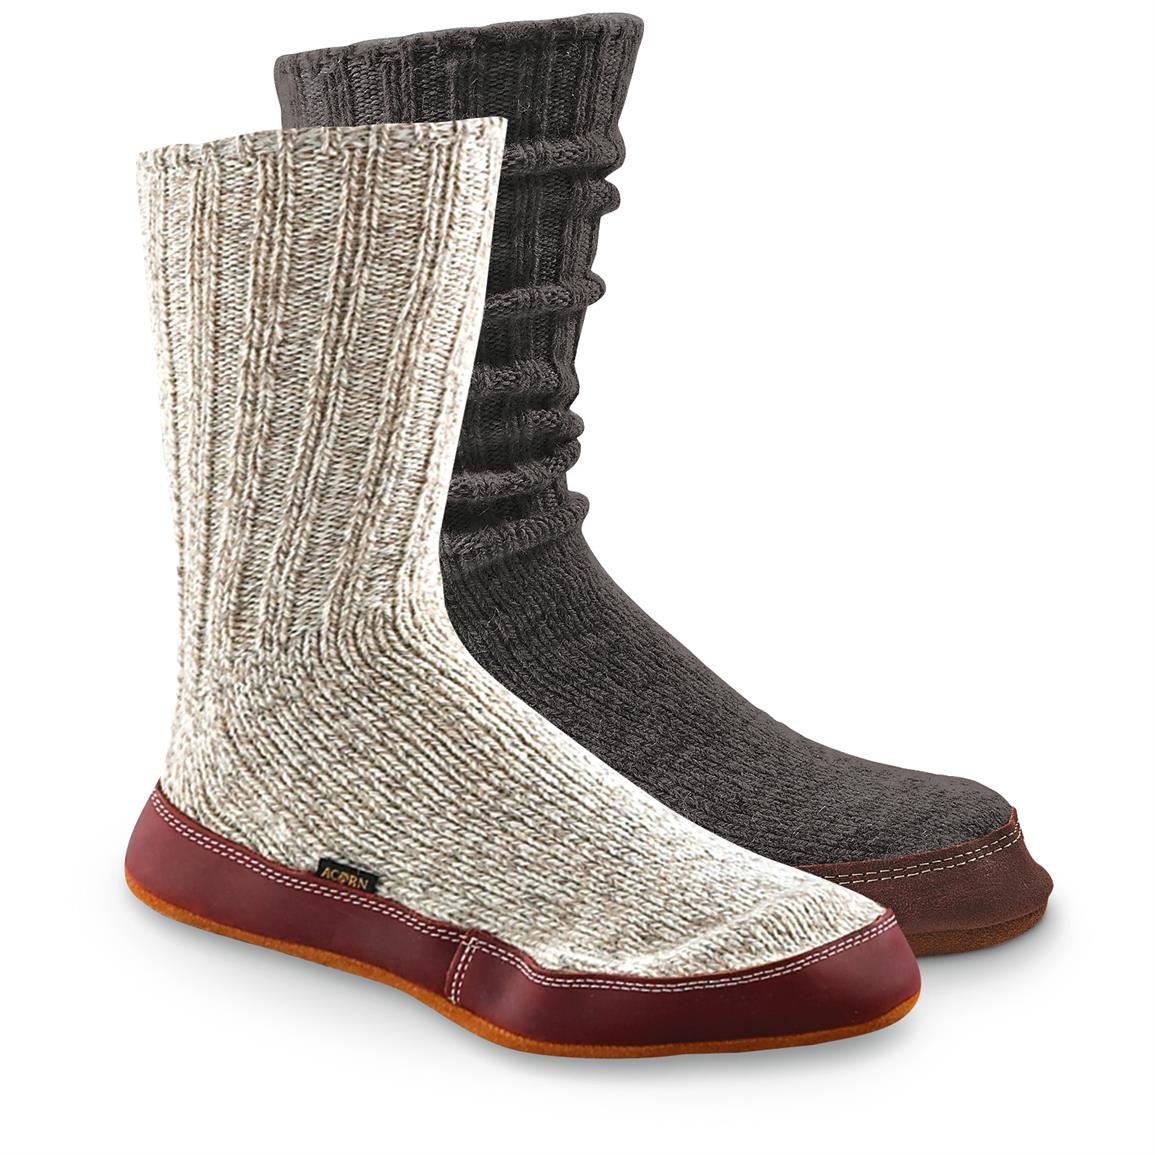 Acorn Unisex Ragg Wool Slipper Socks